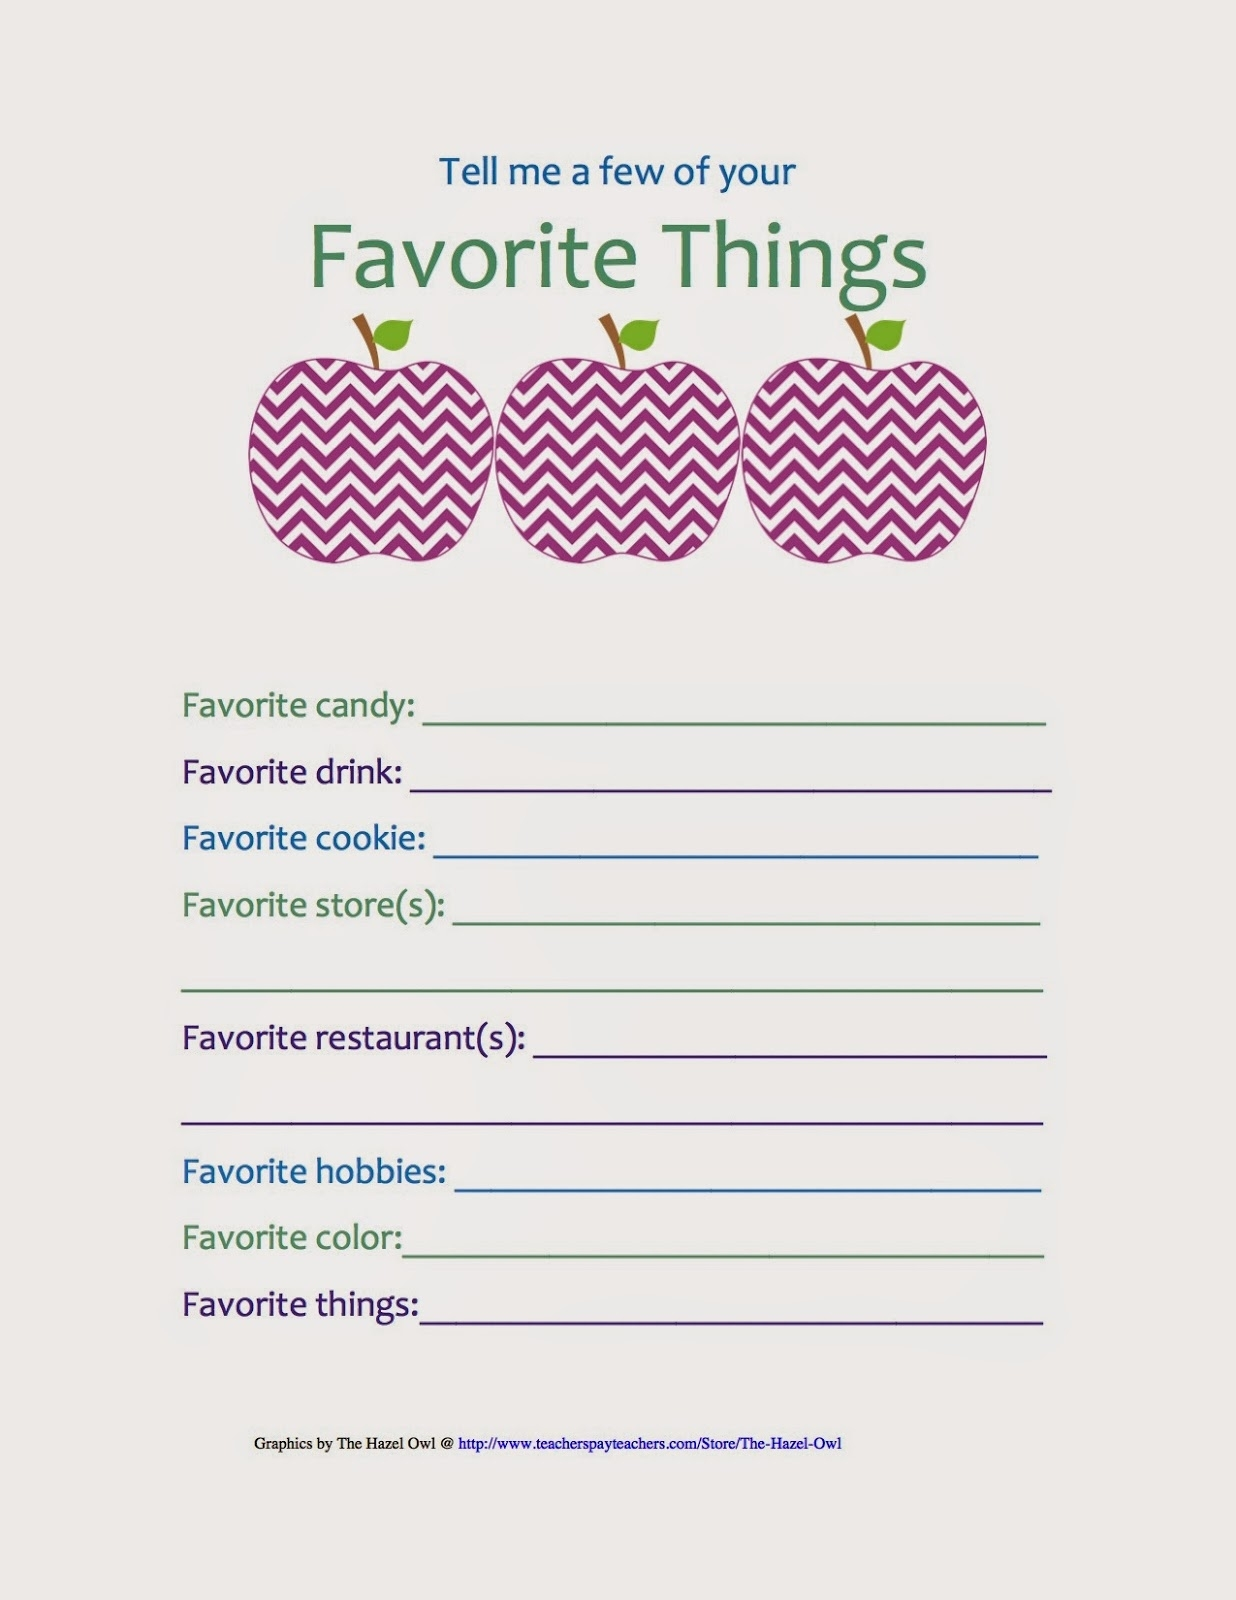 29 Images Of My Favorite Things Template | Helmettown regarding A Few Of My Favorite Things Template